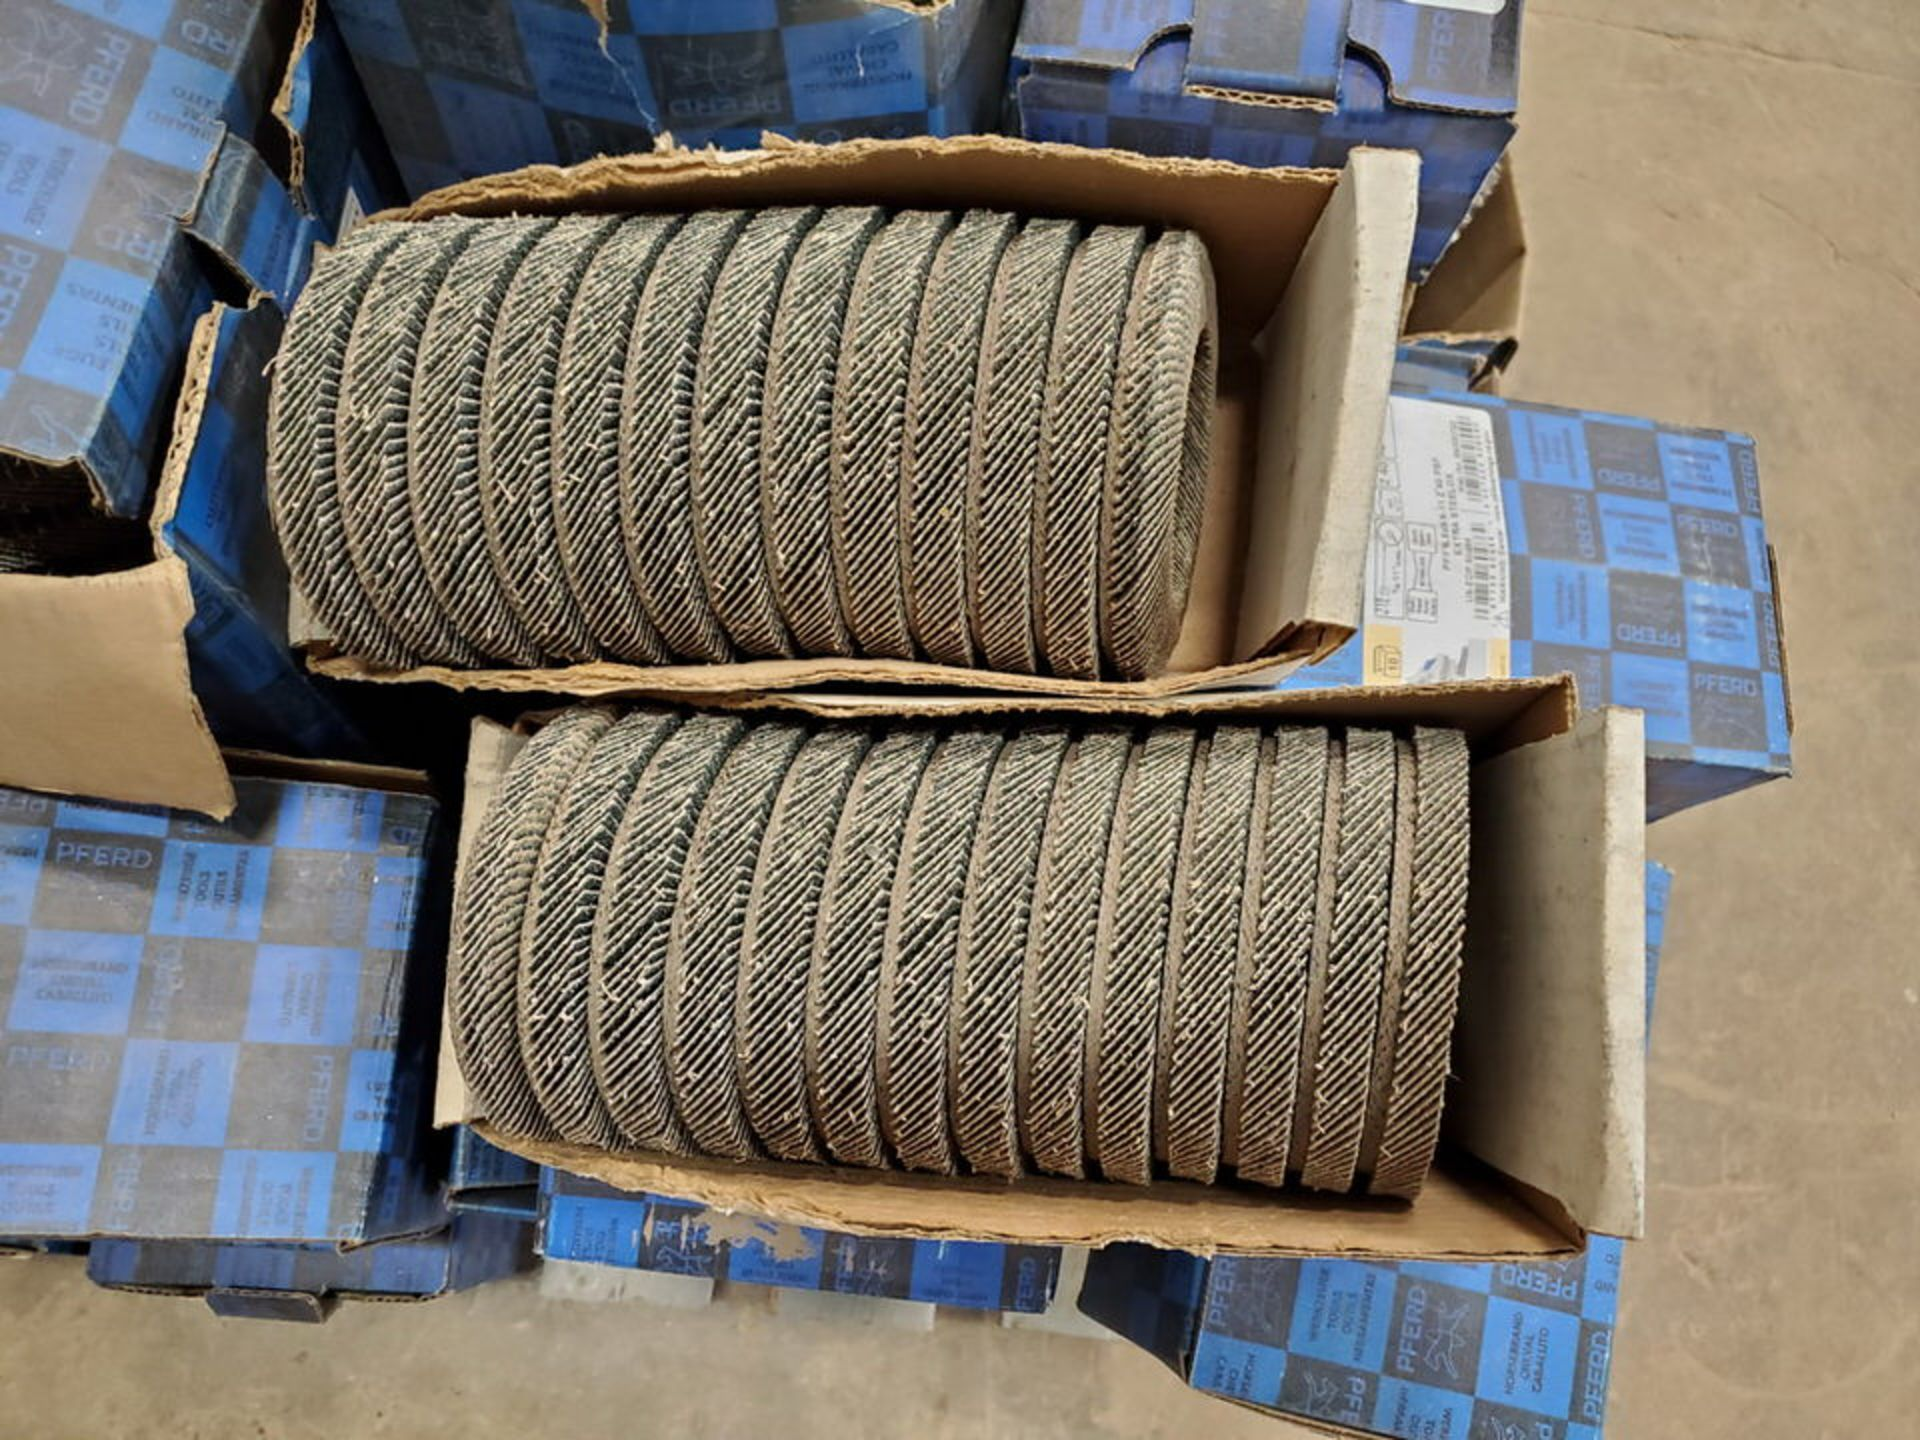 """Pferd Assorted Grinding & Flap Discs & Wire Brushes Size Range: 4-1/2""""-9"""" x 1/8"""" - Image 5 of 10"""